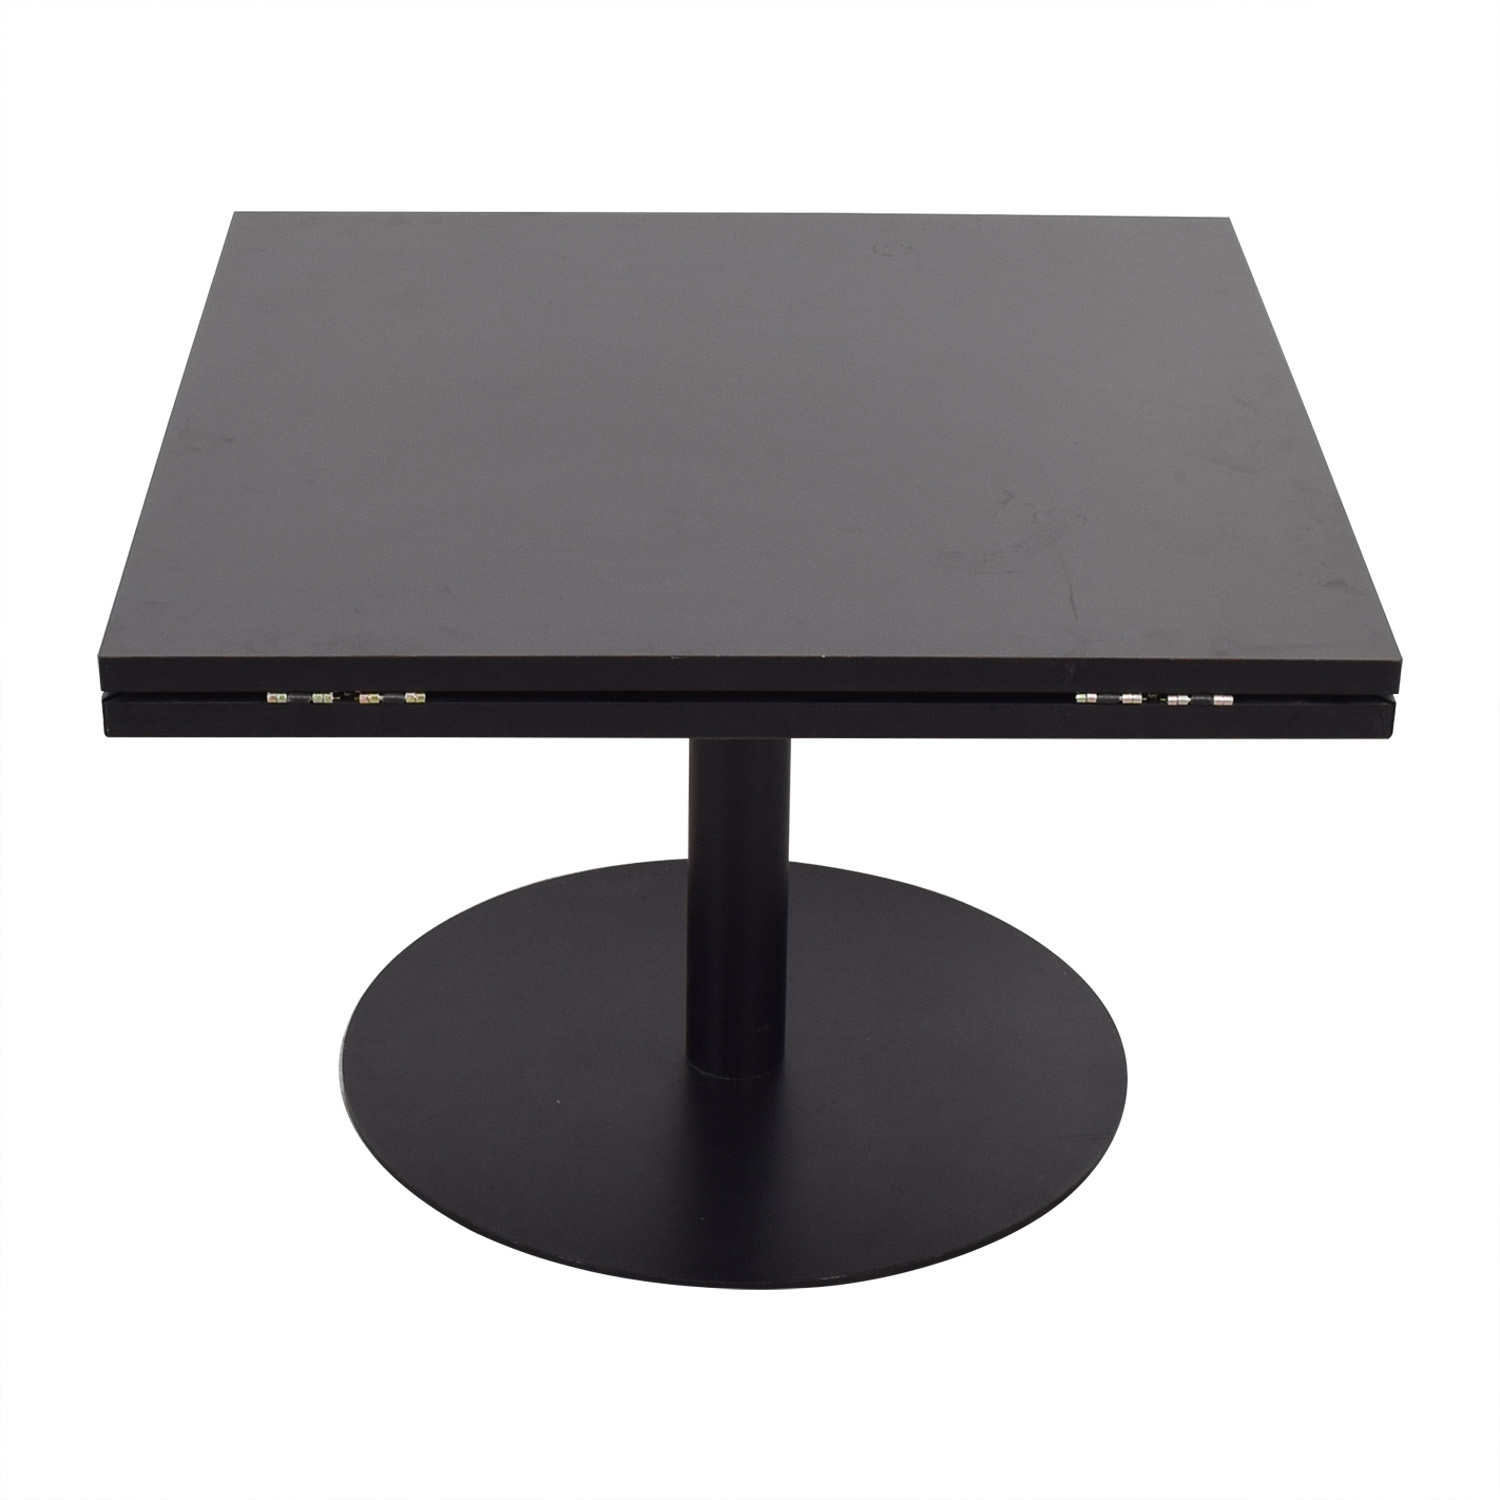 Black Square to Round Foldable Sides Table used